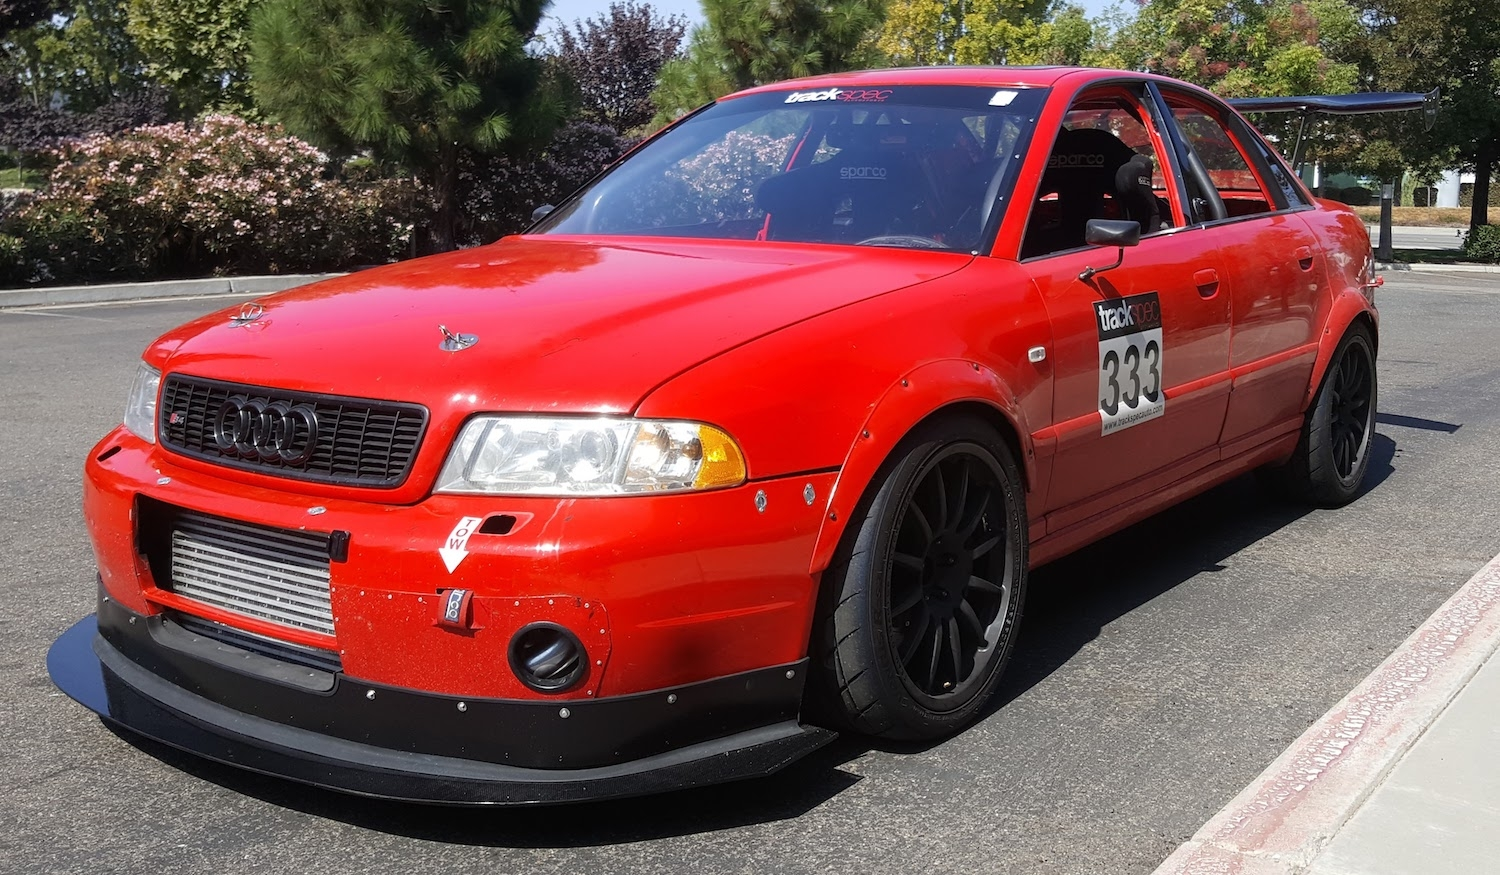 Audi B5 S4 Stage III Professionally built Racecar WR Showroom